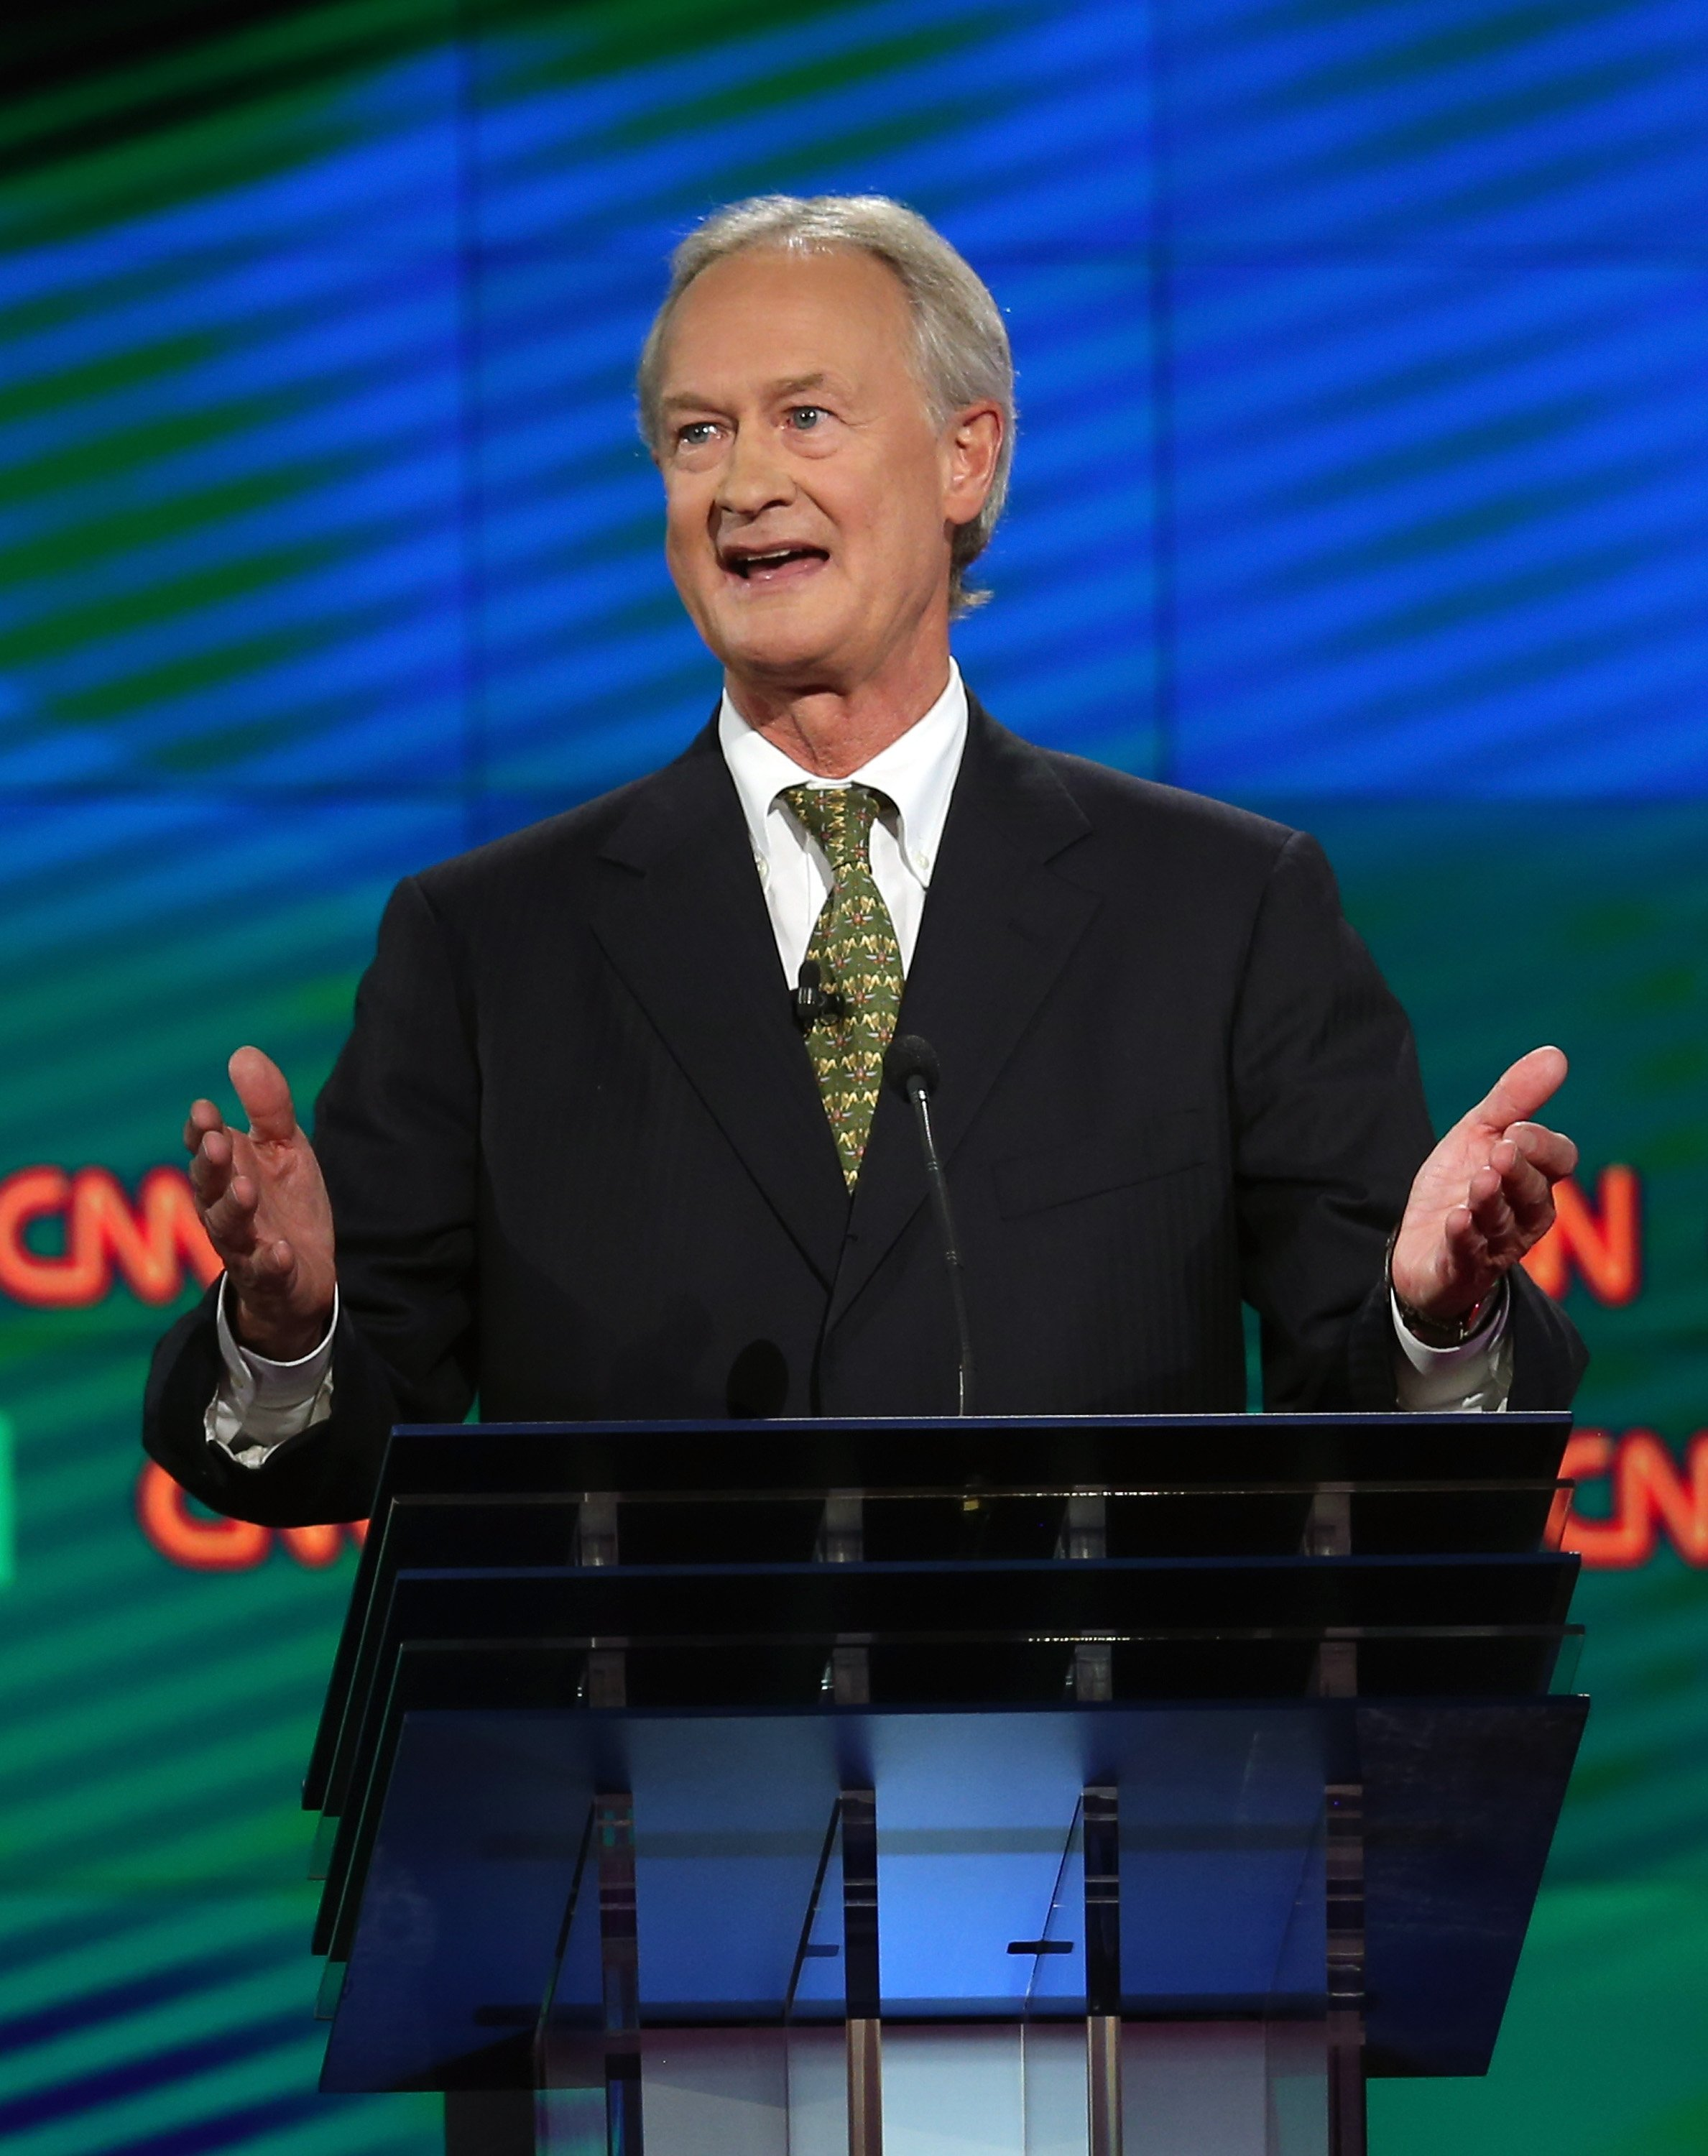 Lincoln Chafee takes part in a presidential debate sponsored by CNN and Facebook at Wynn Las Vegas on Oct.13, 2015 in Las Vegas.